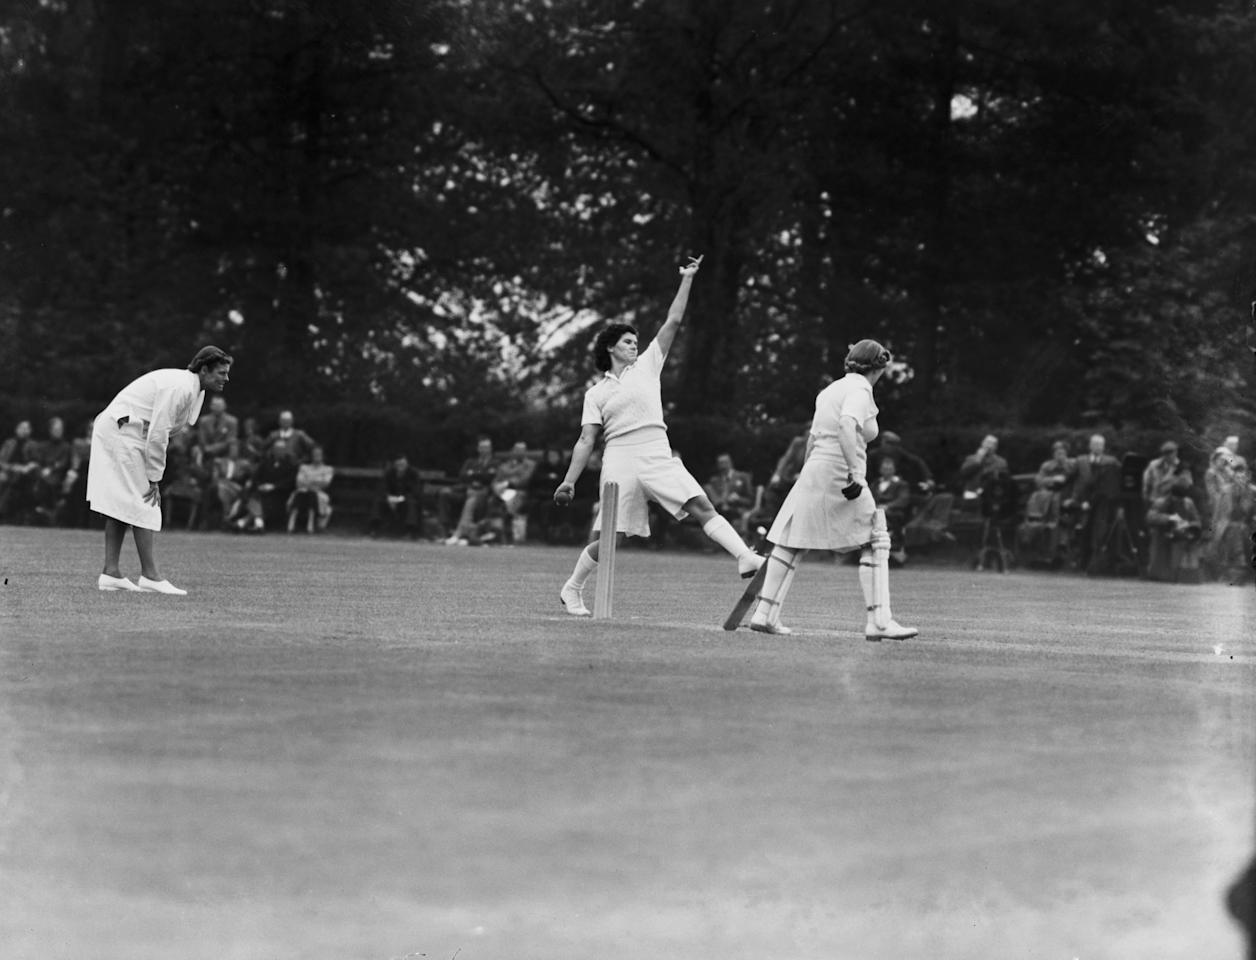 Australian cricketer Betty Wilson (1921 - 2010) bowling against Kent at Sevenoaks, at the start of the Australian Women's Cricket Team tour of England, 19th May 1951. (Photo by Dennis Oulds/Central Press/Hulton Archive/Getty Images)